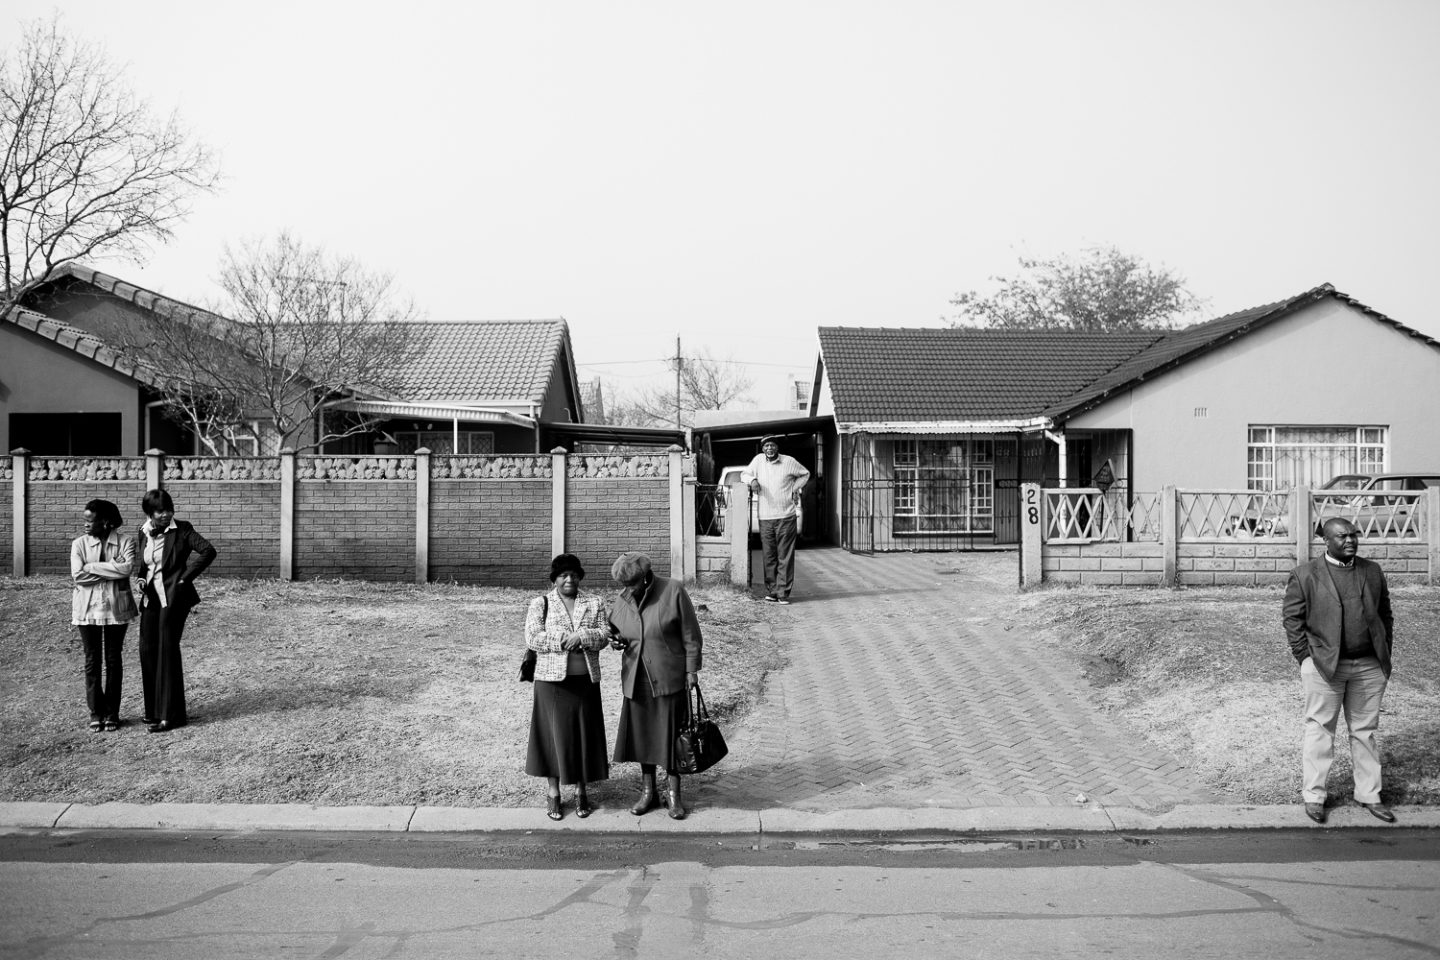 The morning of a funeral. Family is standing ready to go to the cemetary for the unvelling of a tombstone and funeral, Eldorado Park 2015.